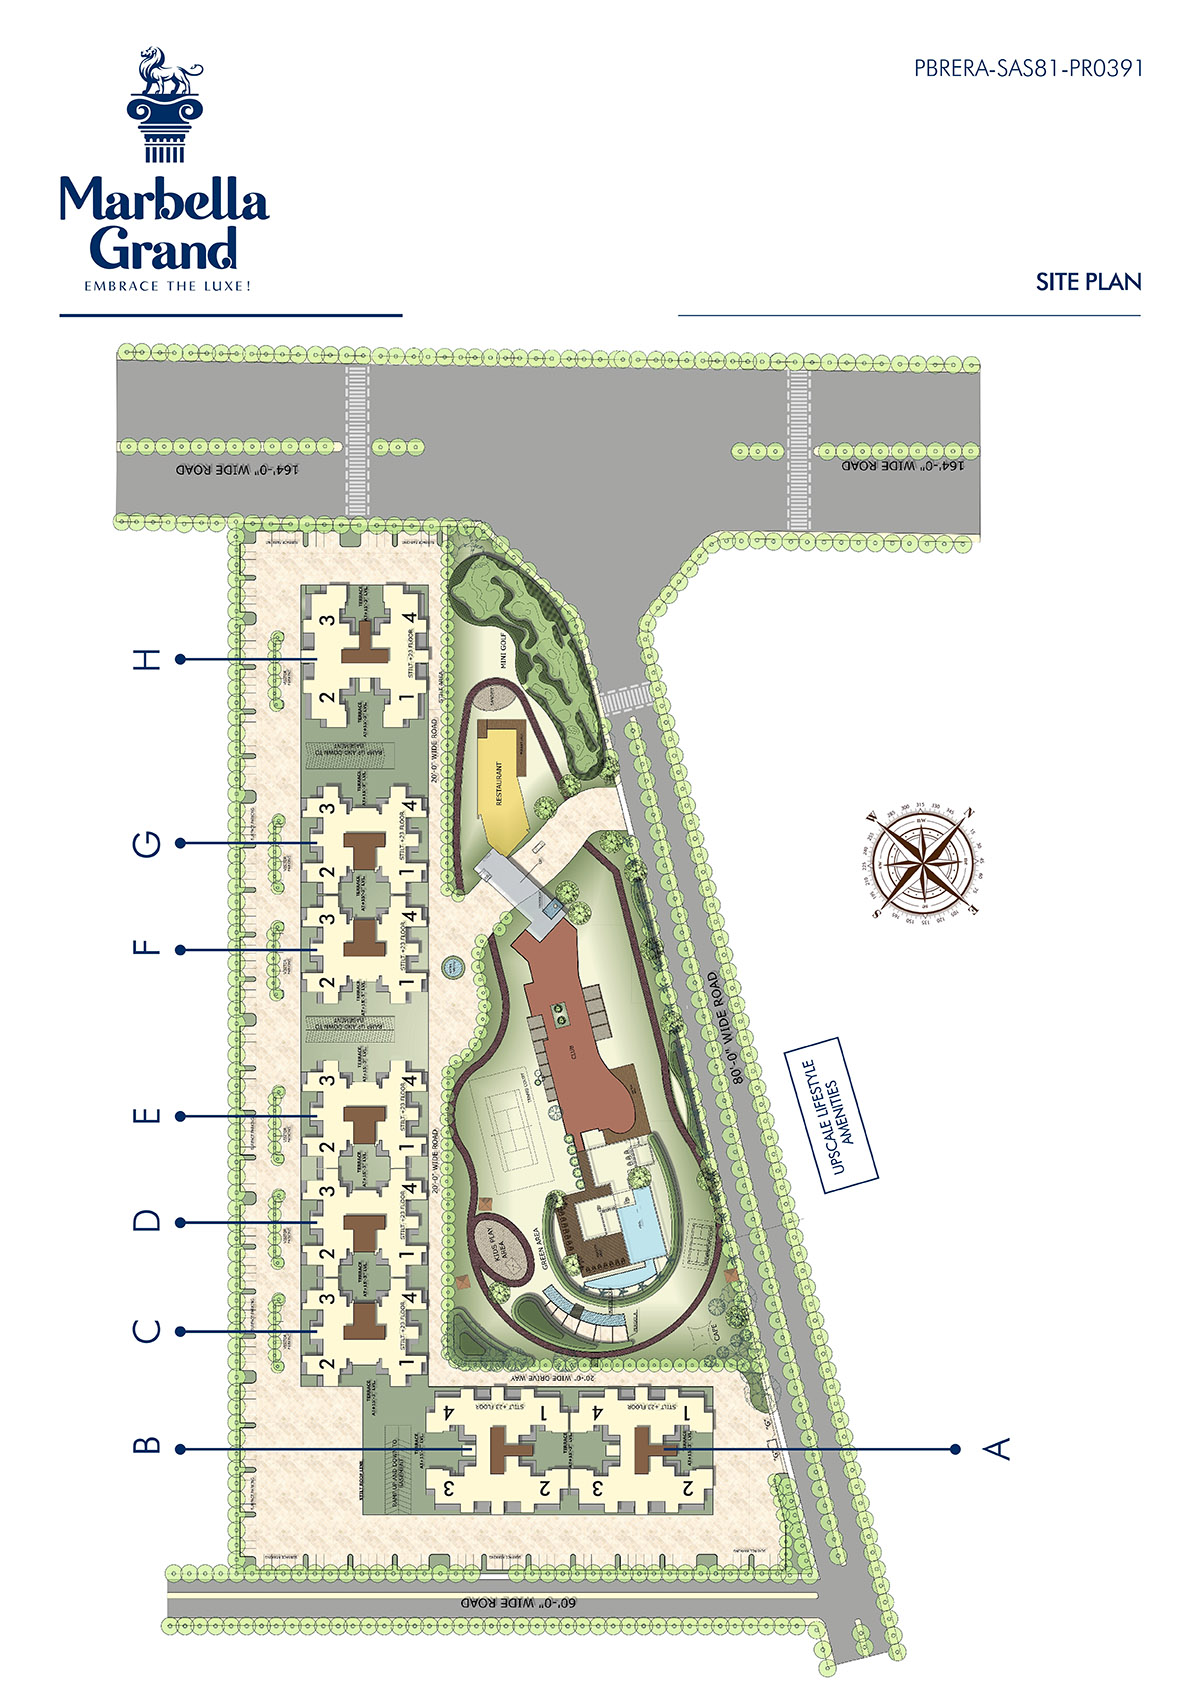 Marbella Grand Site Plan